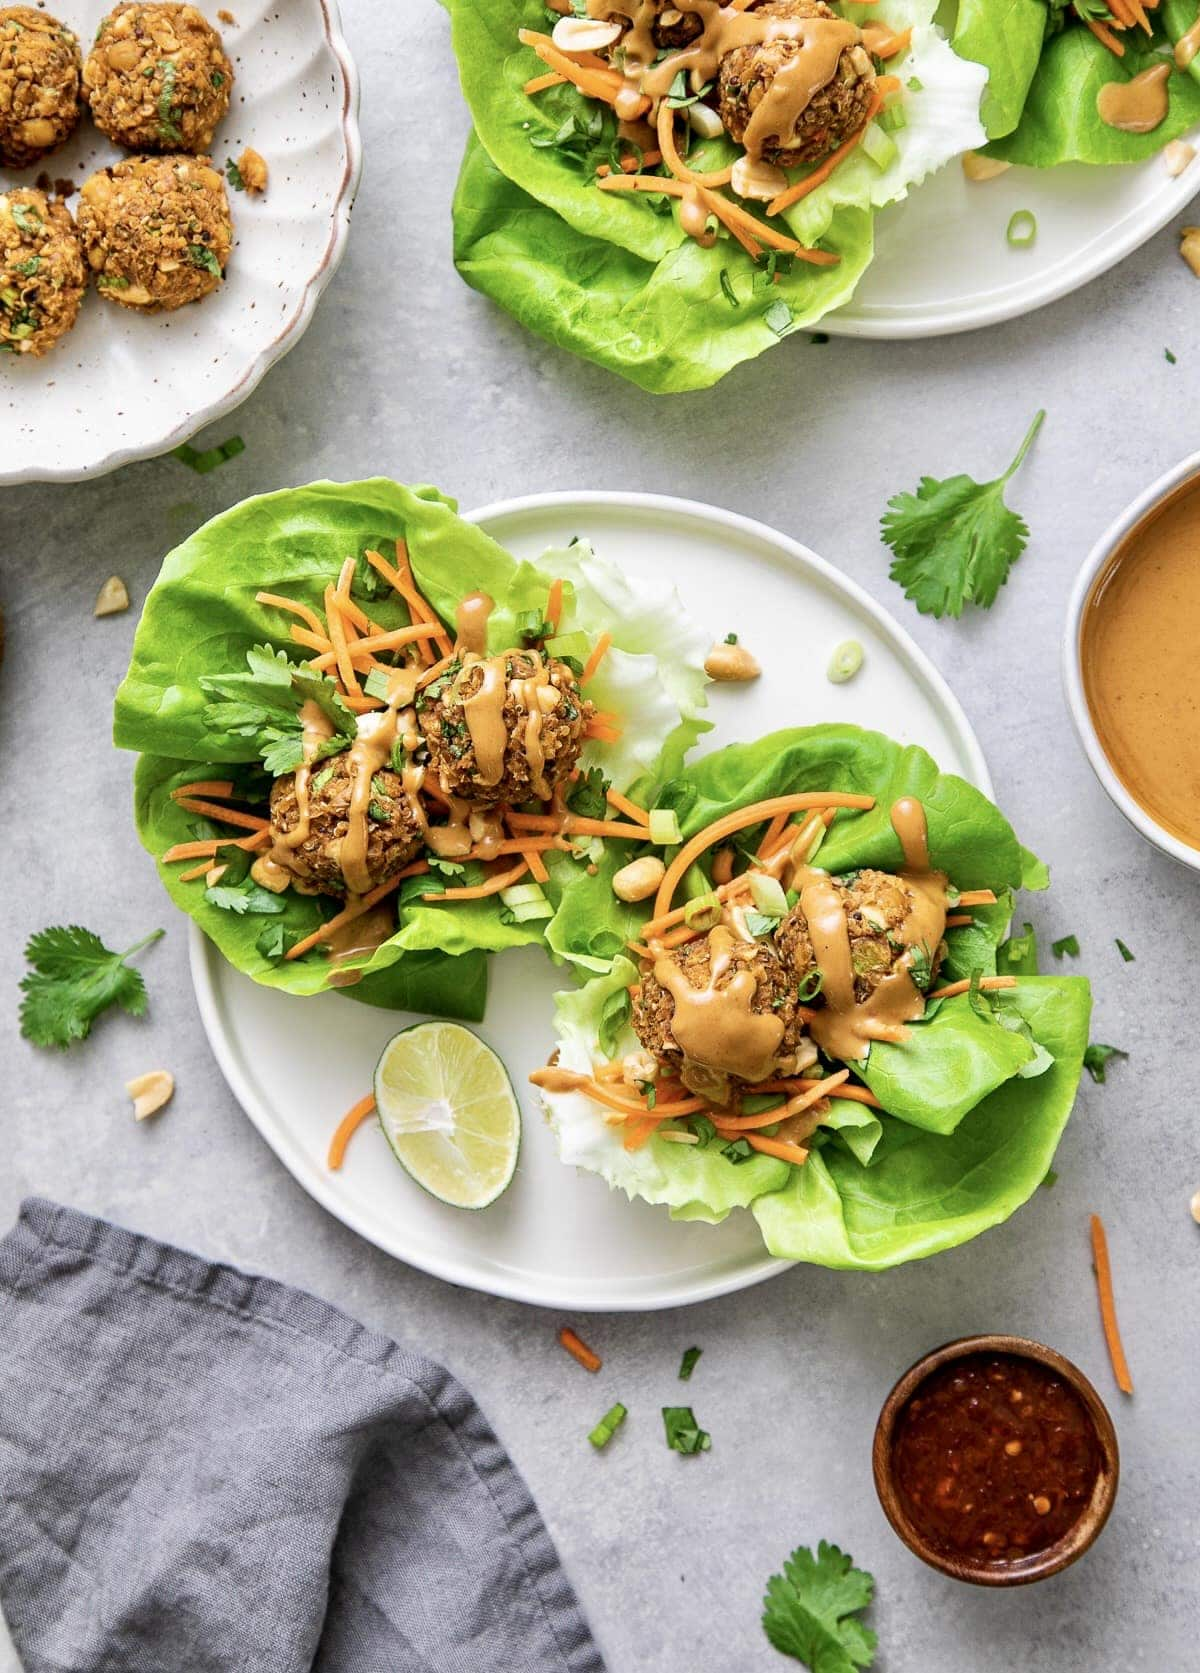 top down view of vegan lettuce wraps with thai quinoa meatballs on a plate with items surrounding.